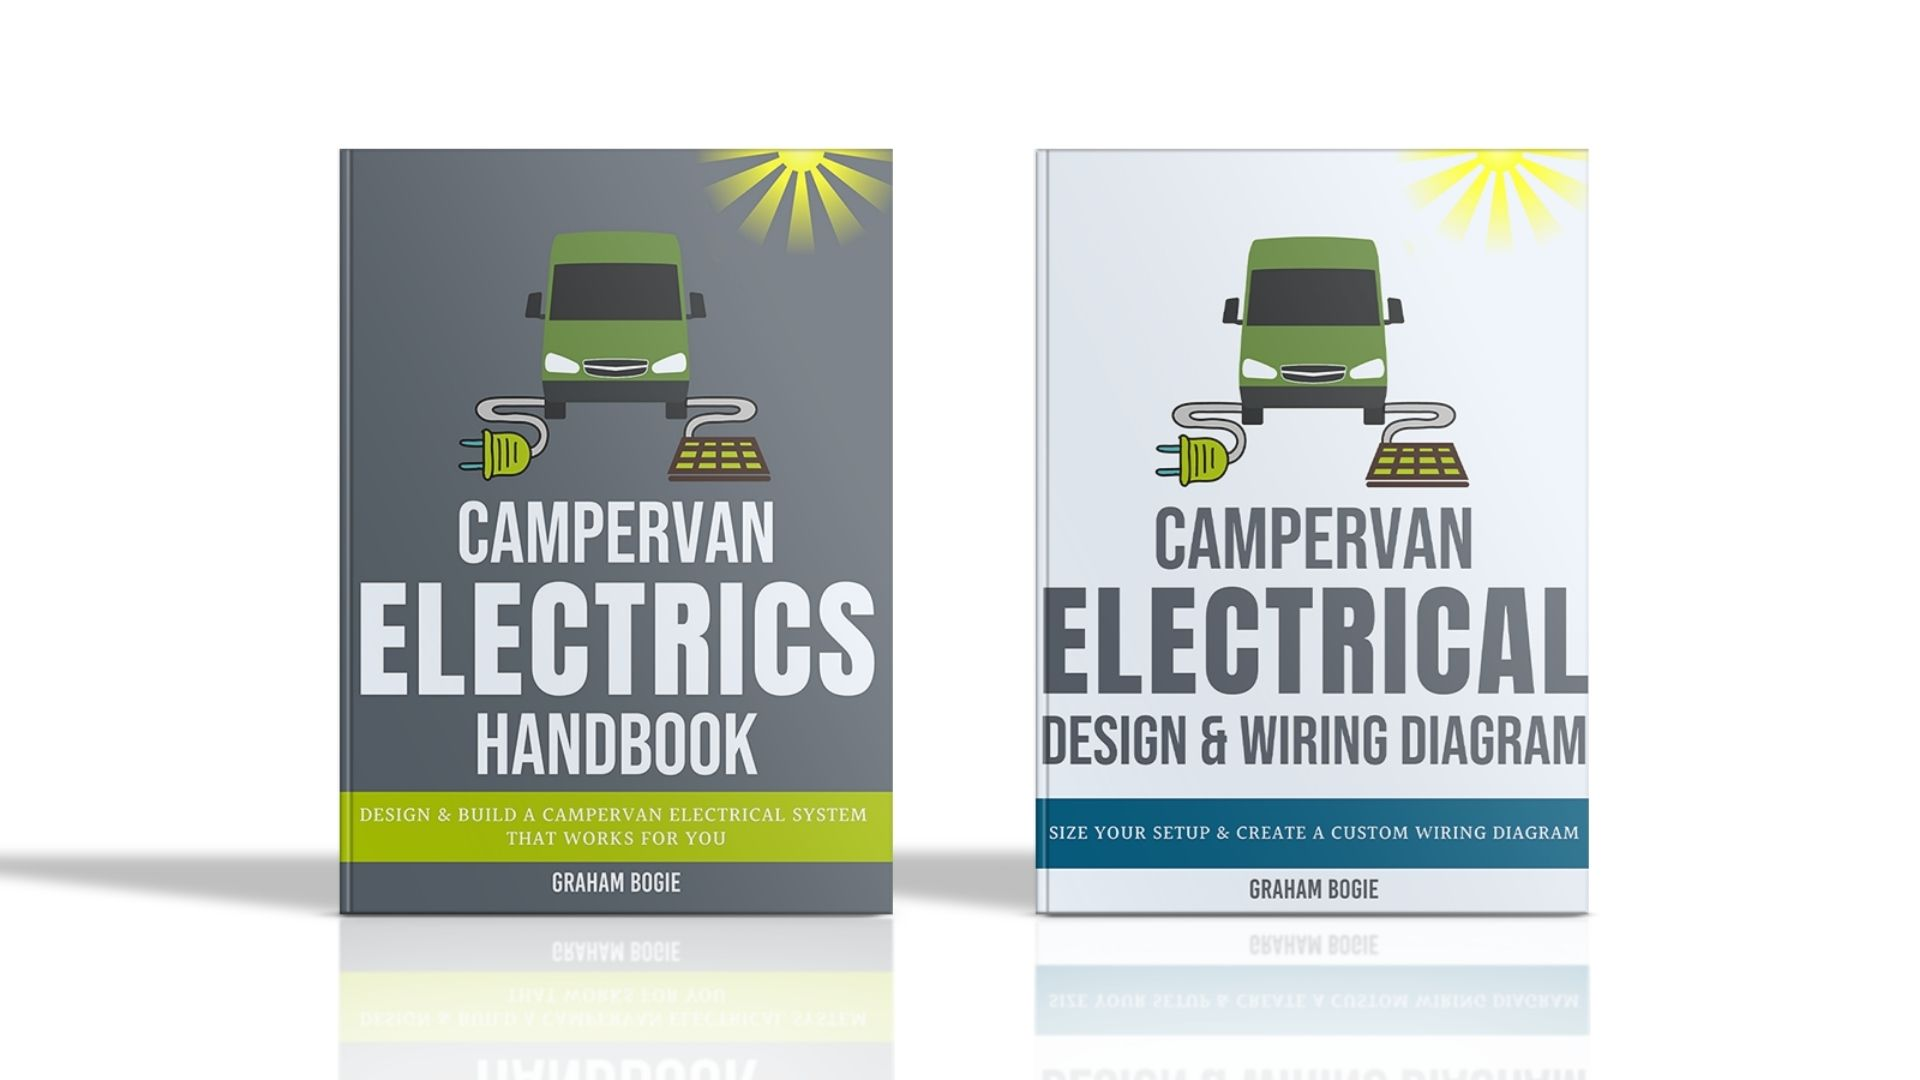 Campervan Electrics Bundle